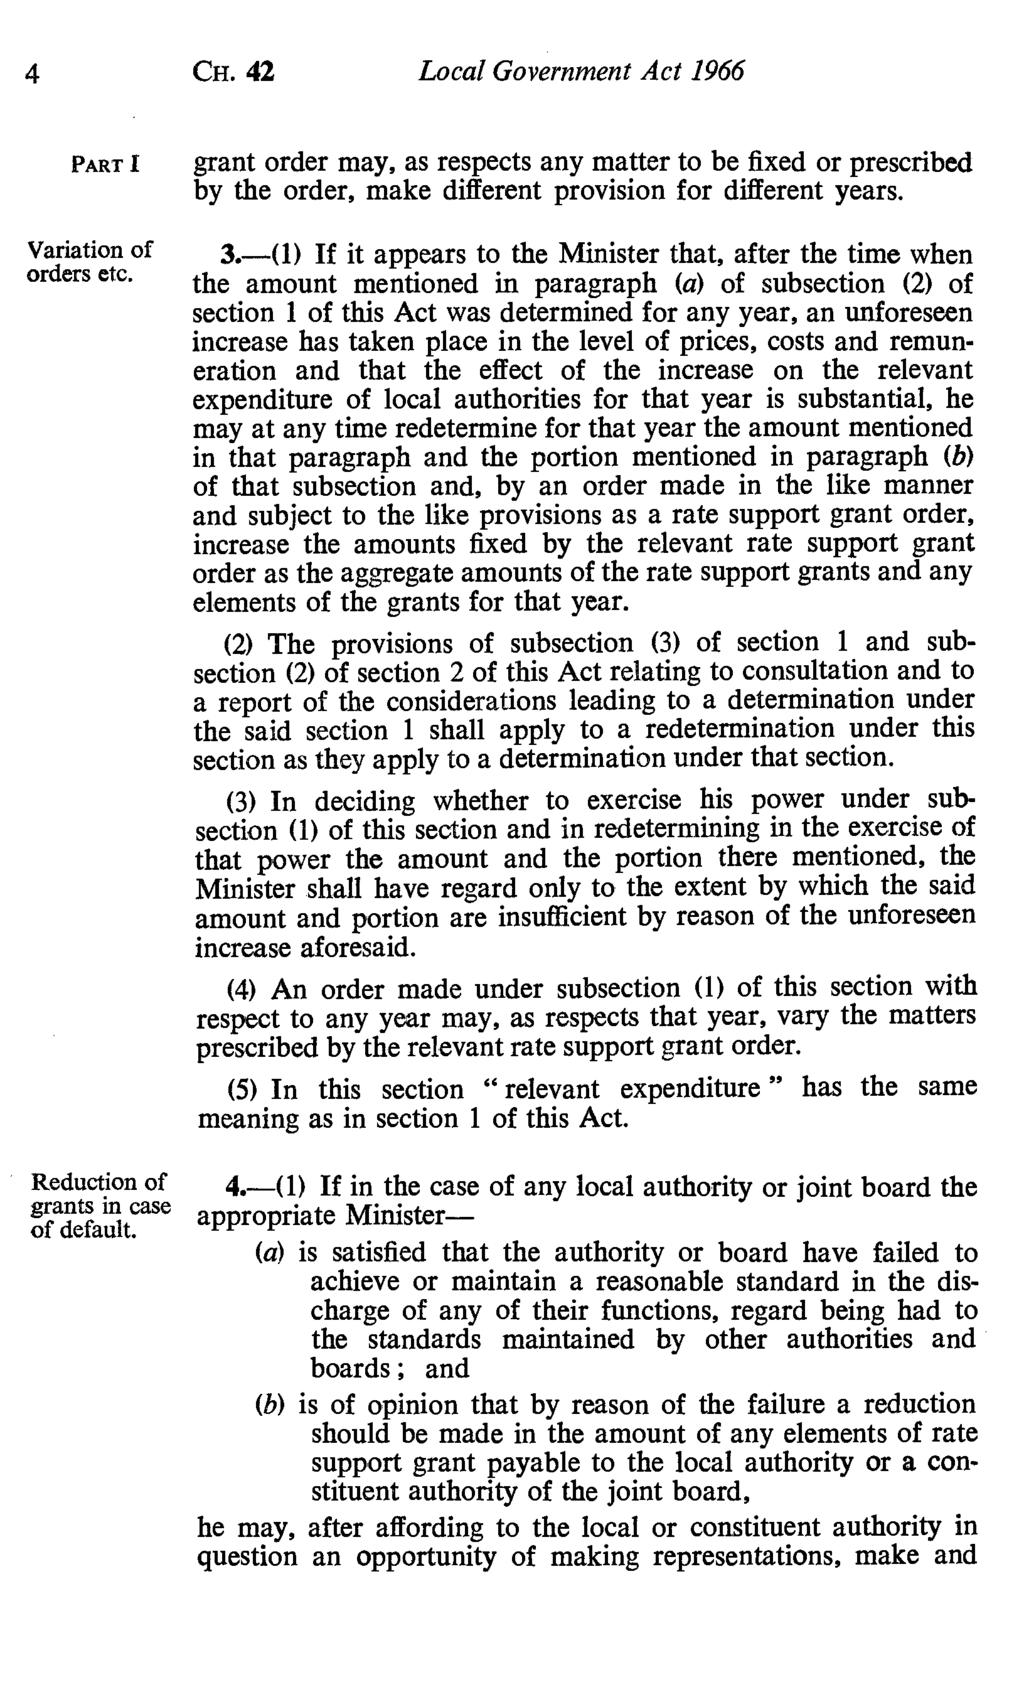 4 CH. 42 Local Government Act 1966 PART I Variation of orders etc. Reduction of grants in case of default.